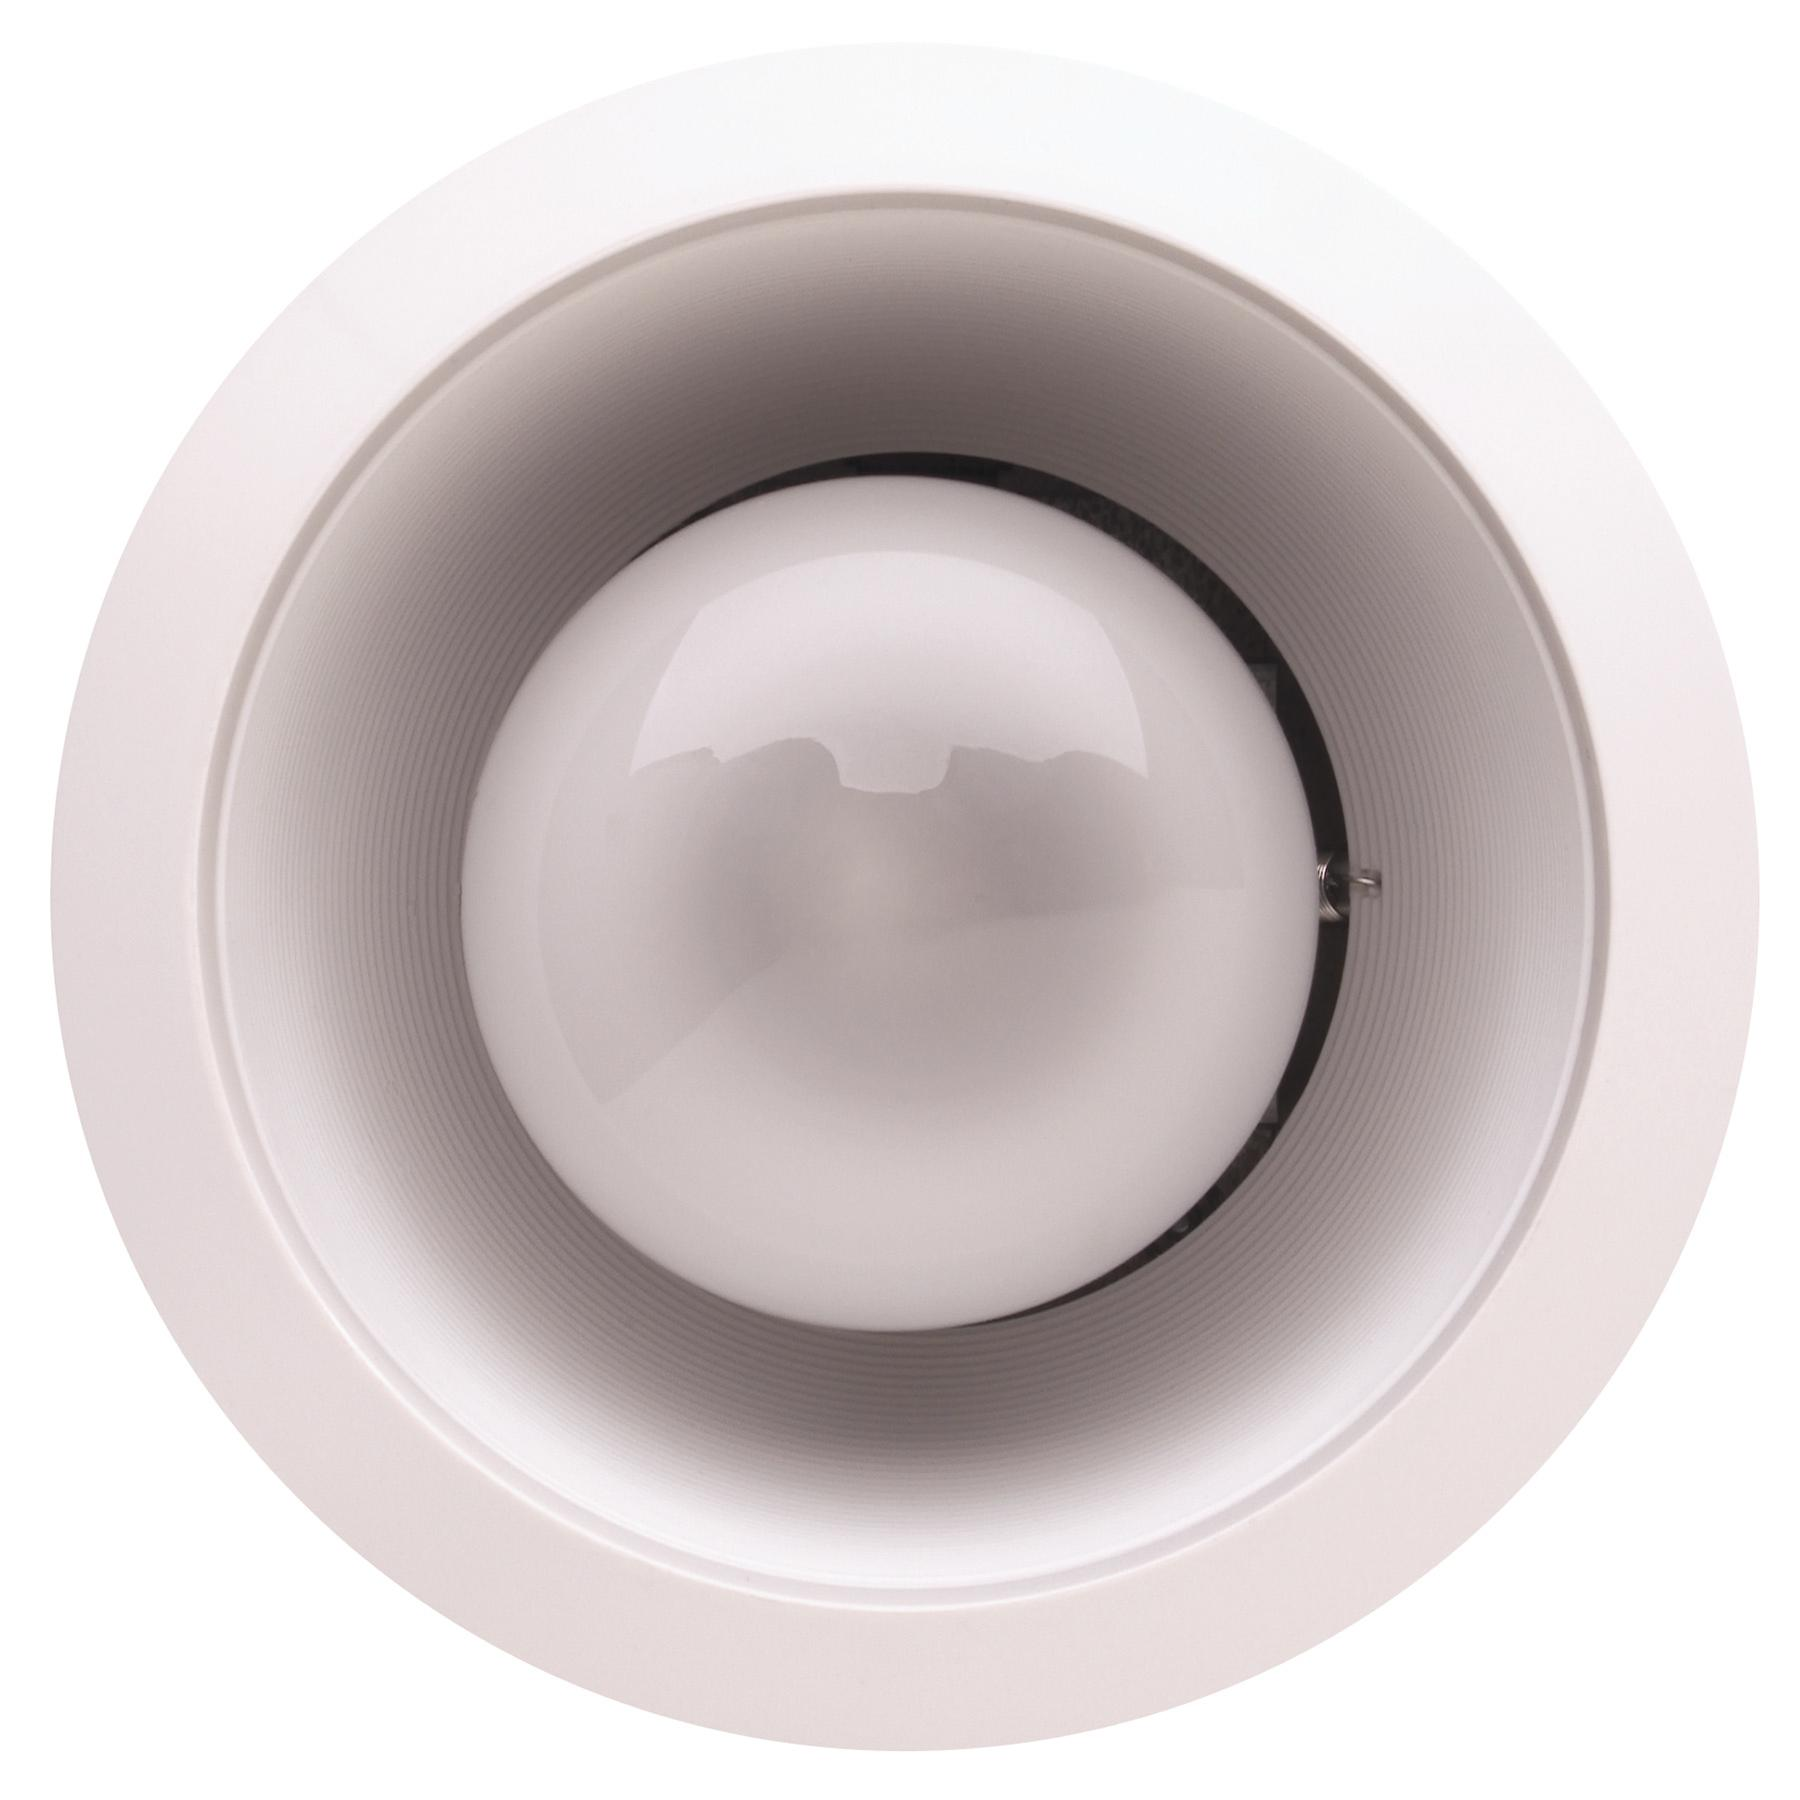 Broan Recessed Fan And Led Light Combo For Bathroom And